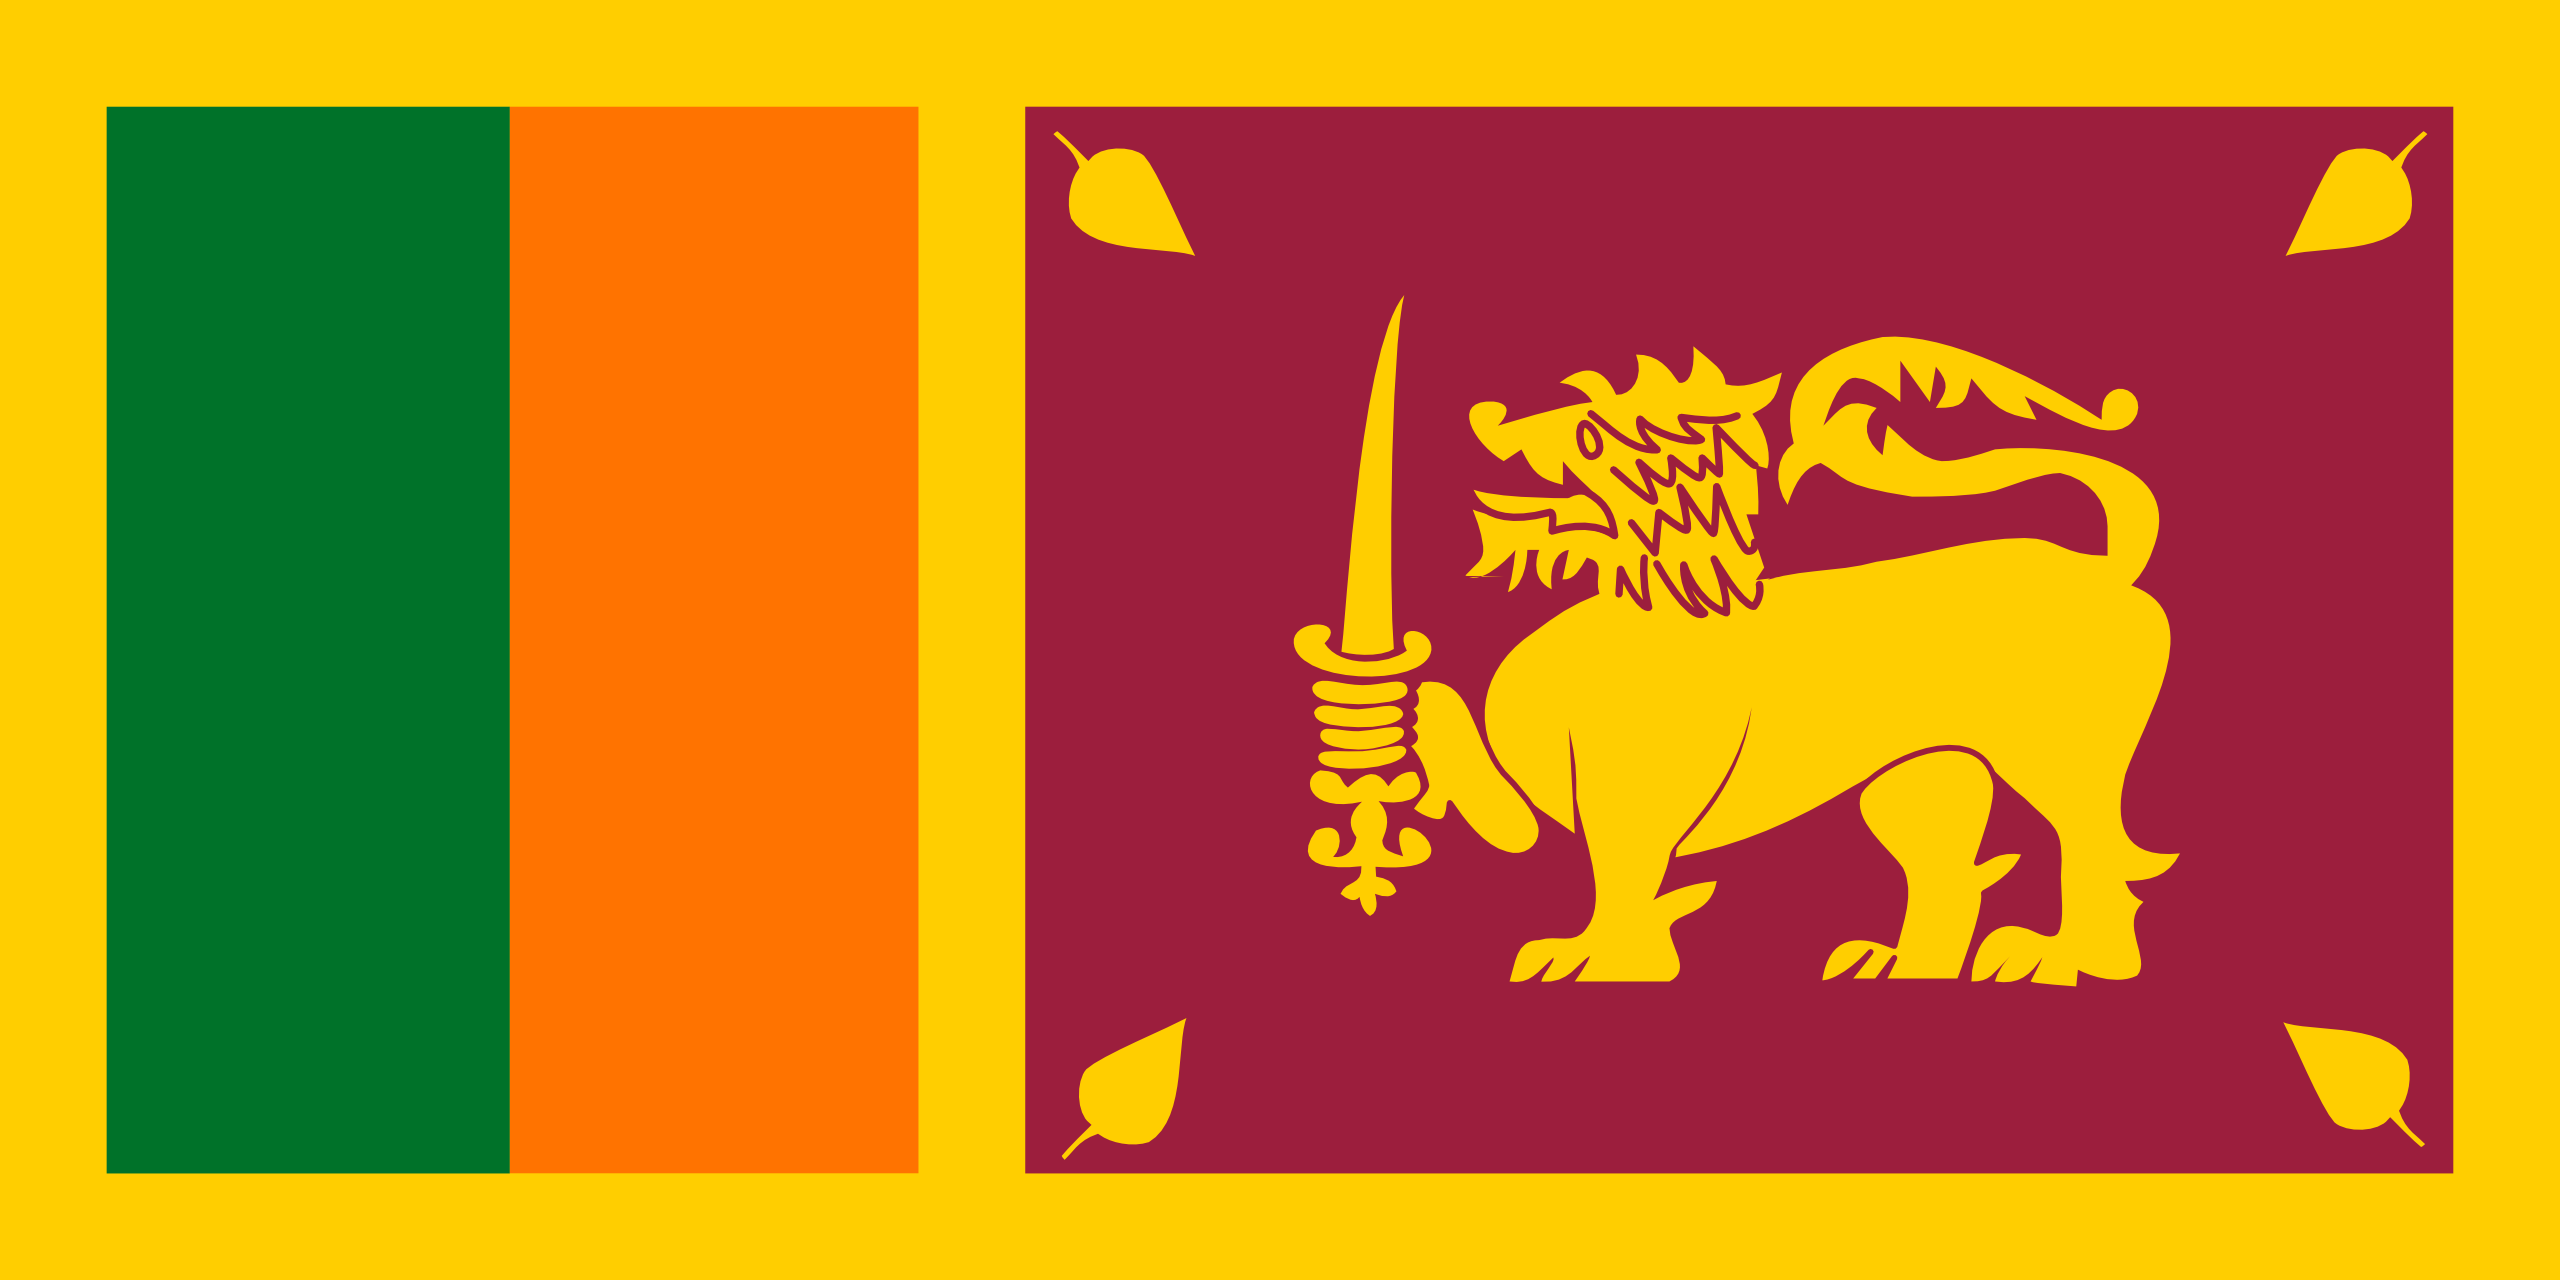 EMBASSY AND CONSULATE OF SRI LANKA